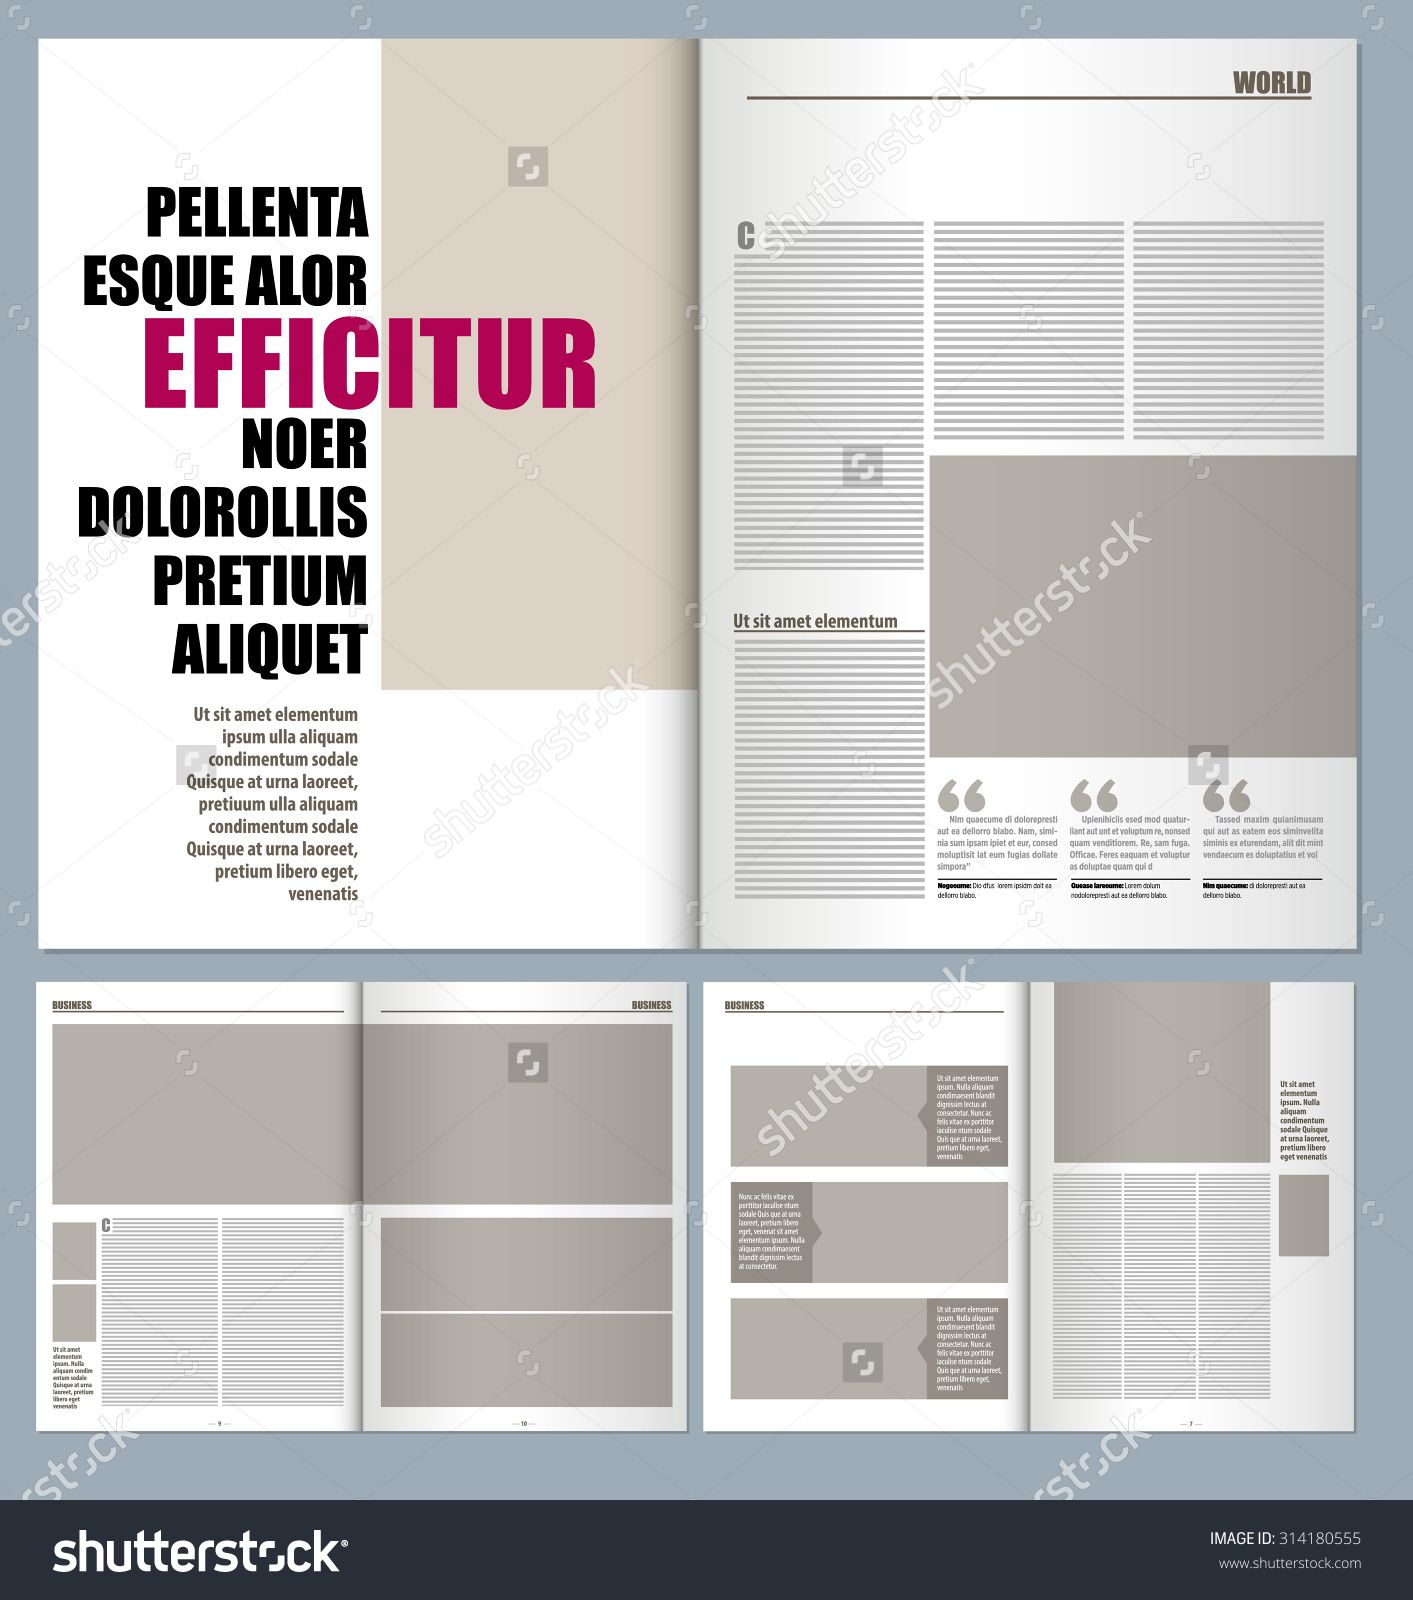 modern magazine layout template | graphic | Pinterest ...